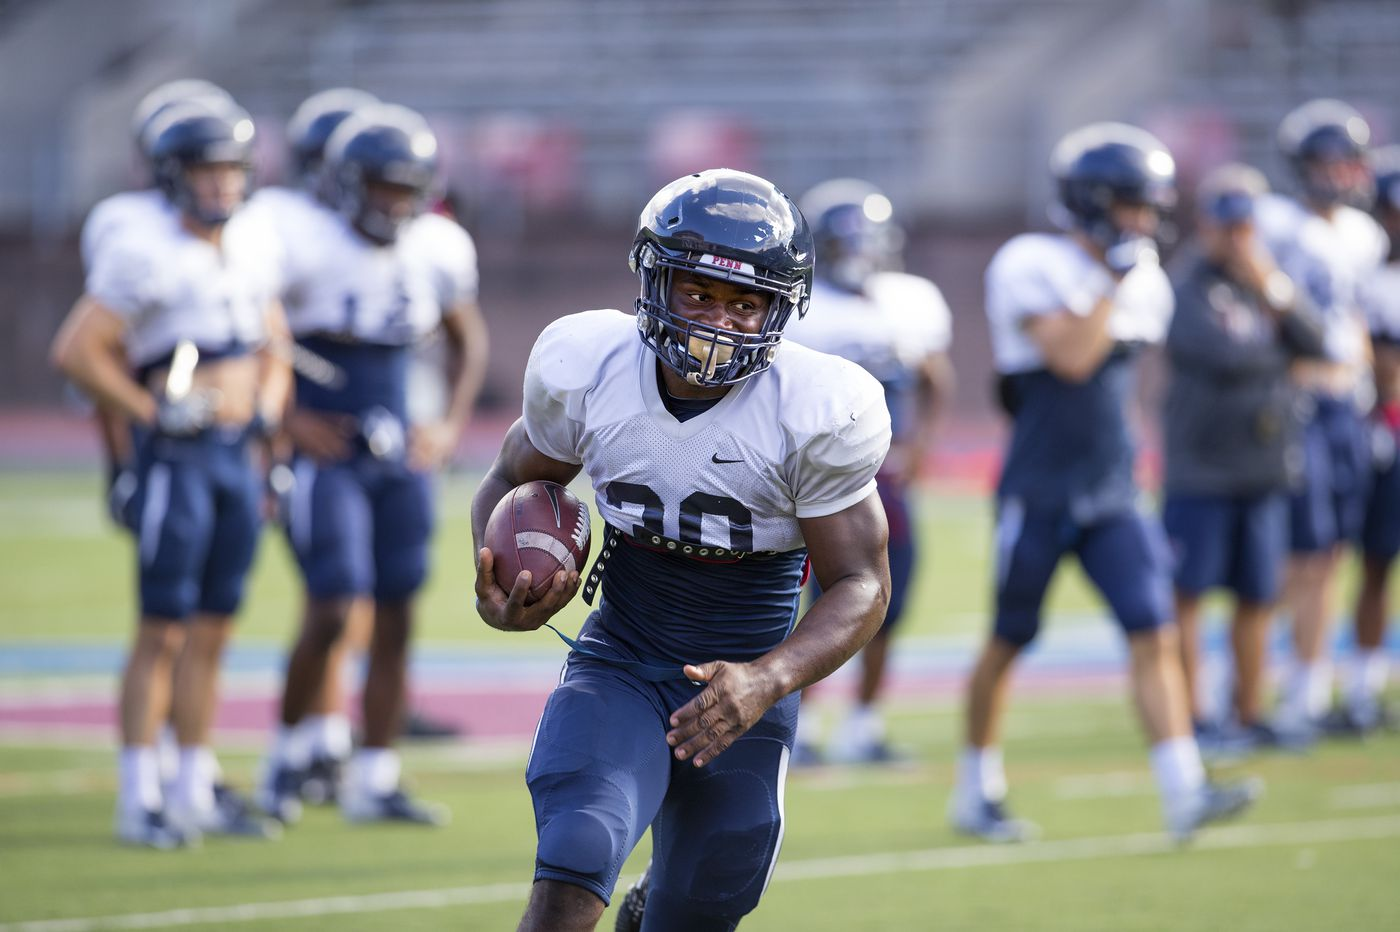 Penn's offense comes alive in 28-24 win over Lafayette